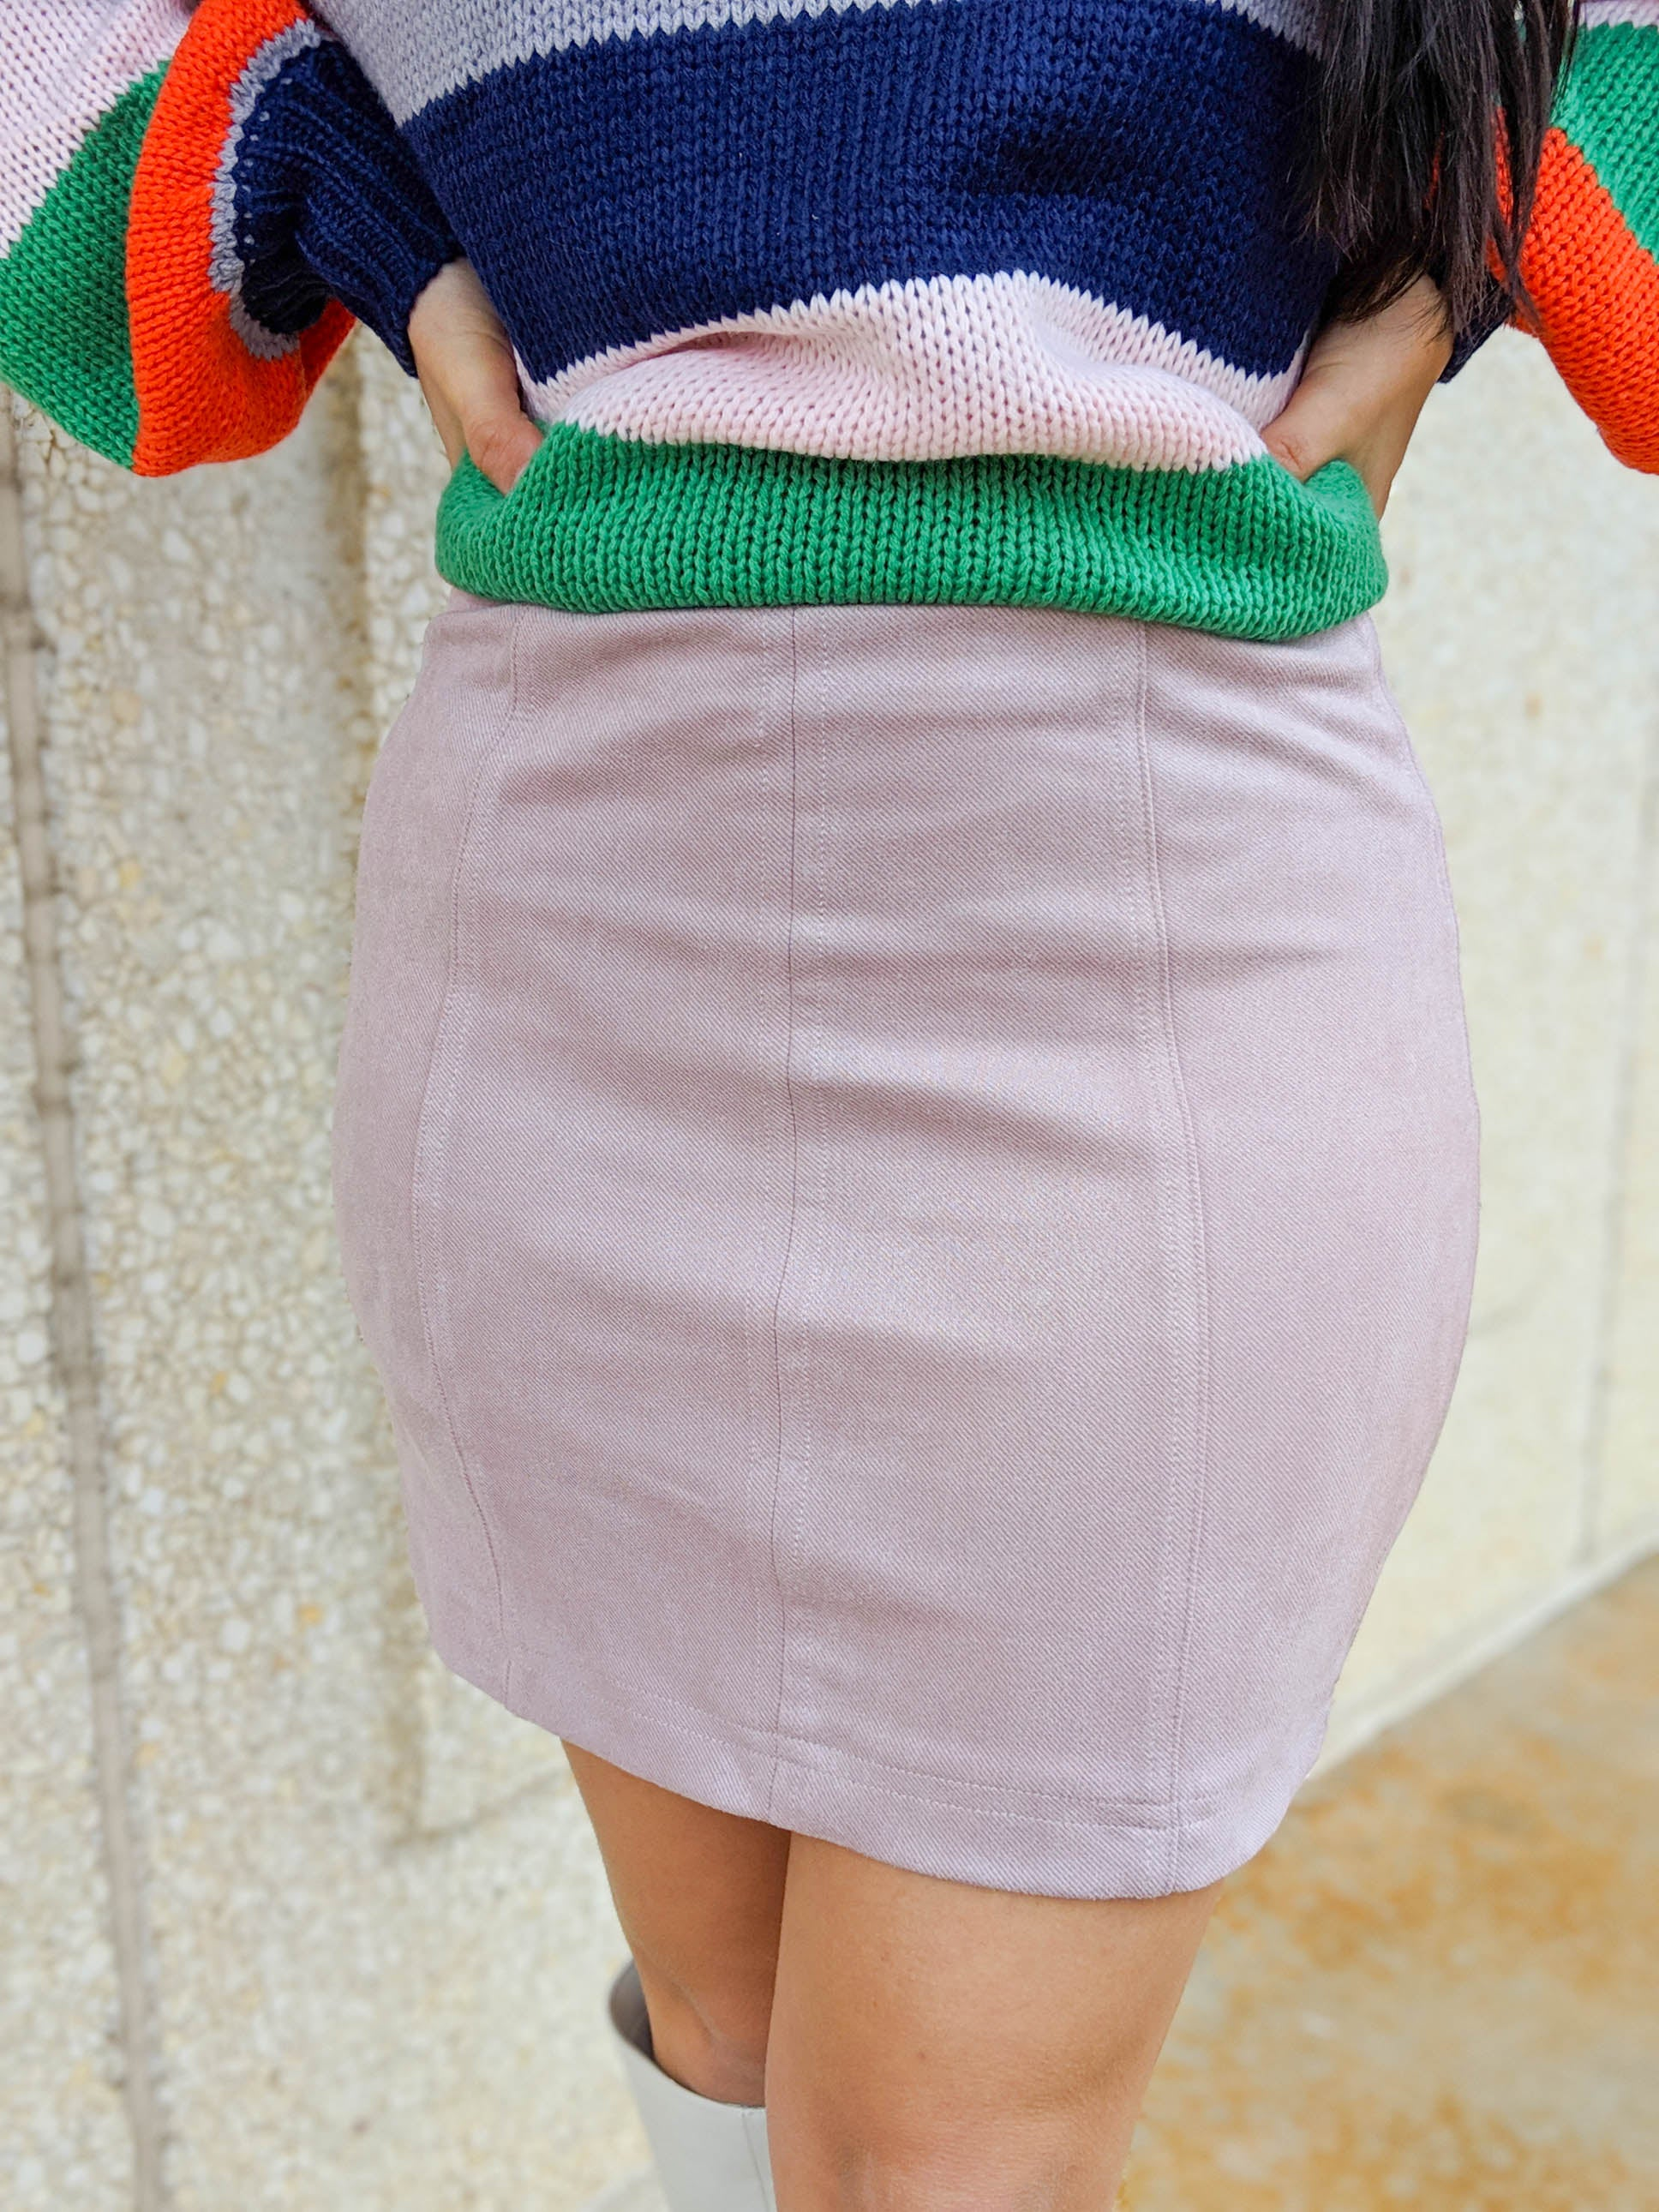 Blushing Beauty Skirt